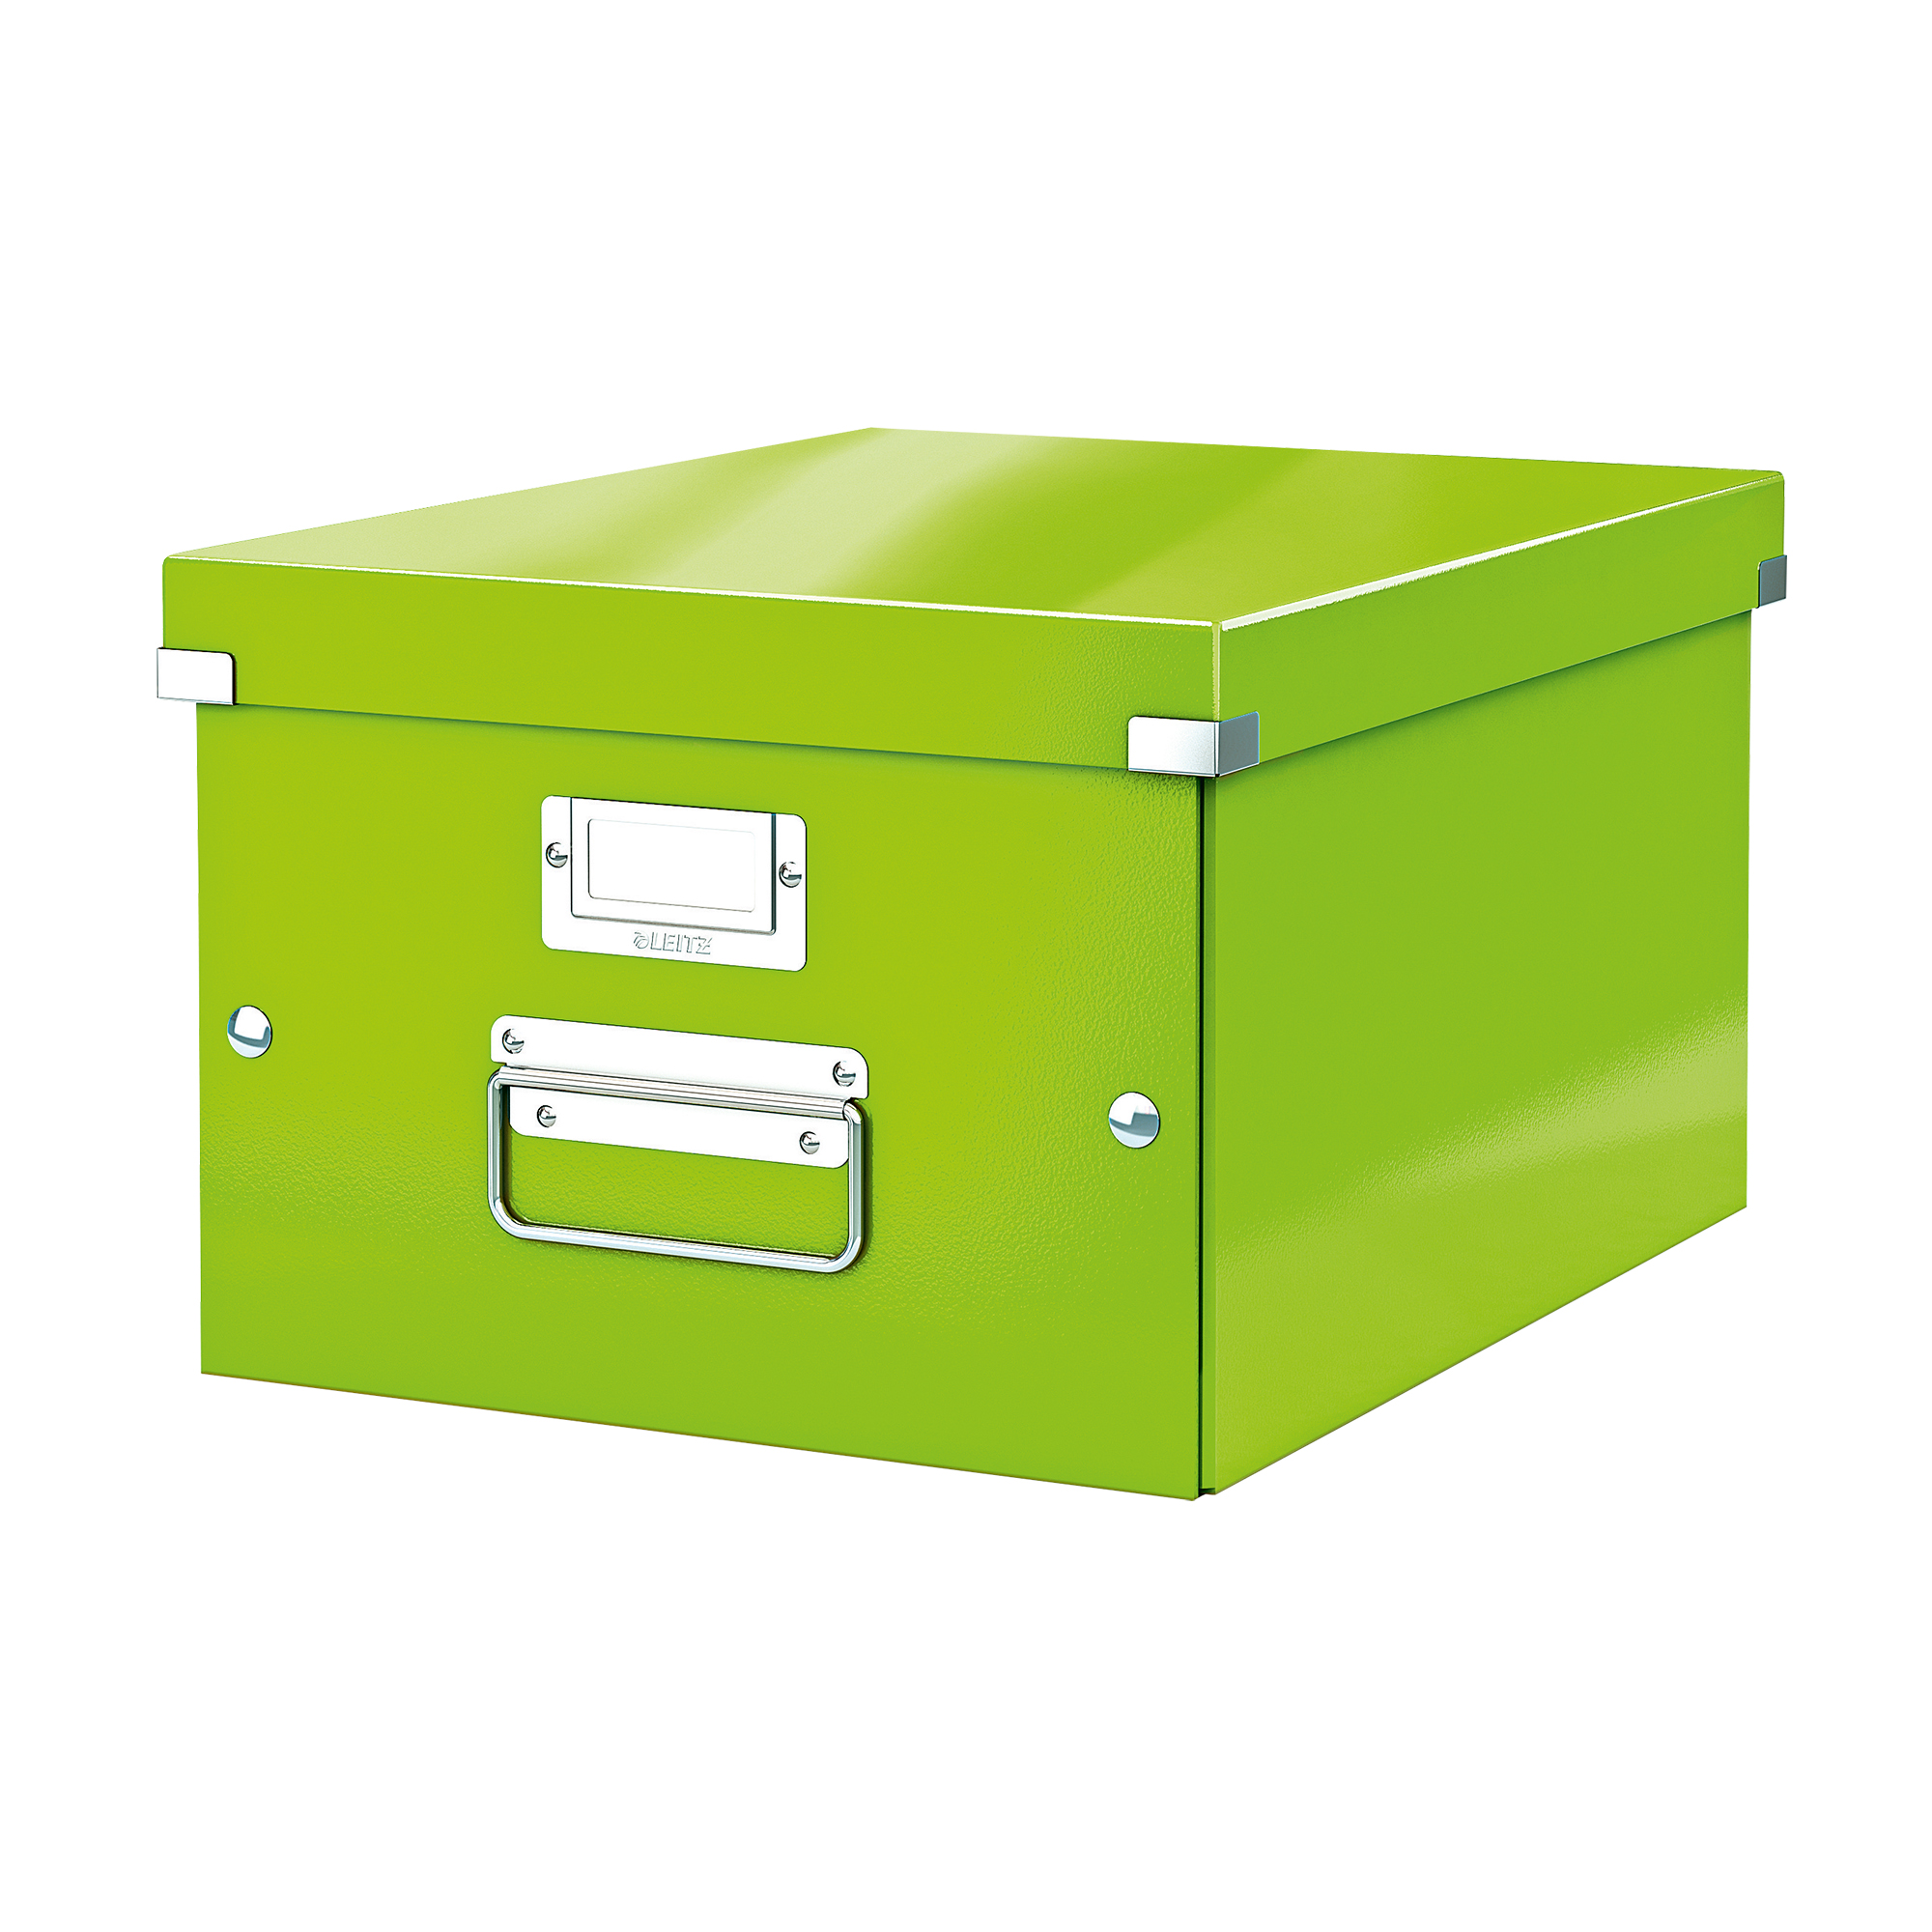 Tool Boxes Leitz Click & Store Collapsible Storage Box Medium For A4 Green Ref 60440054